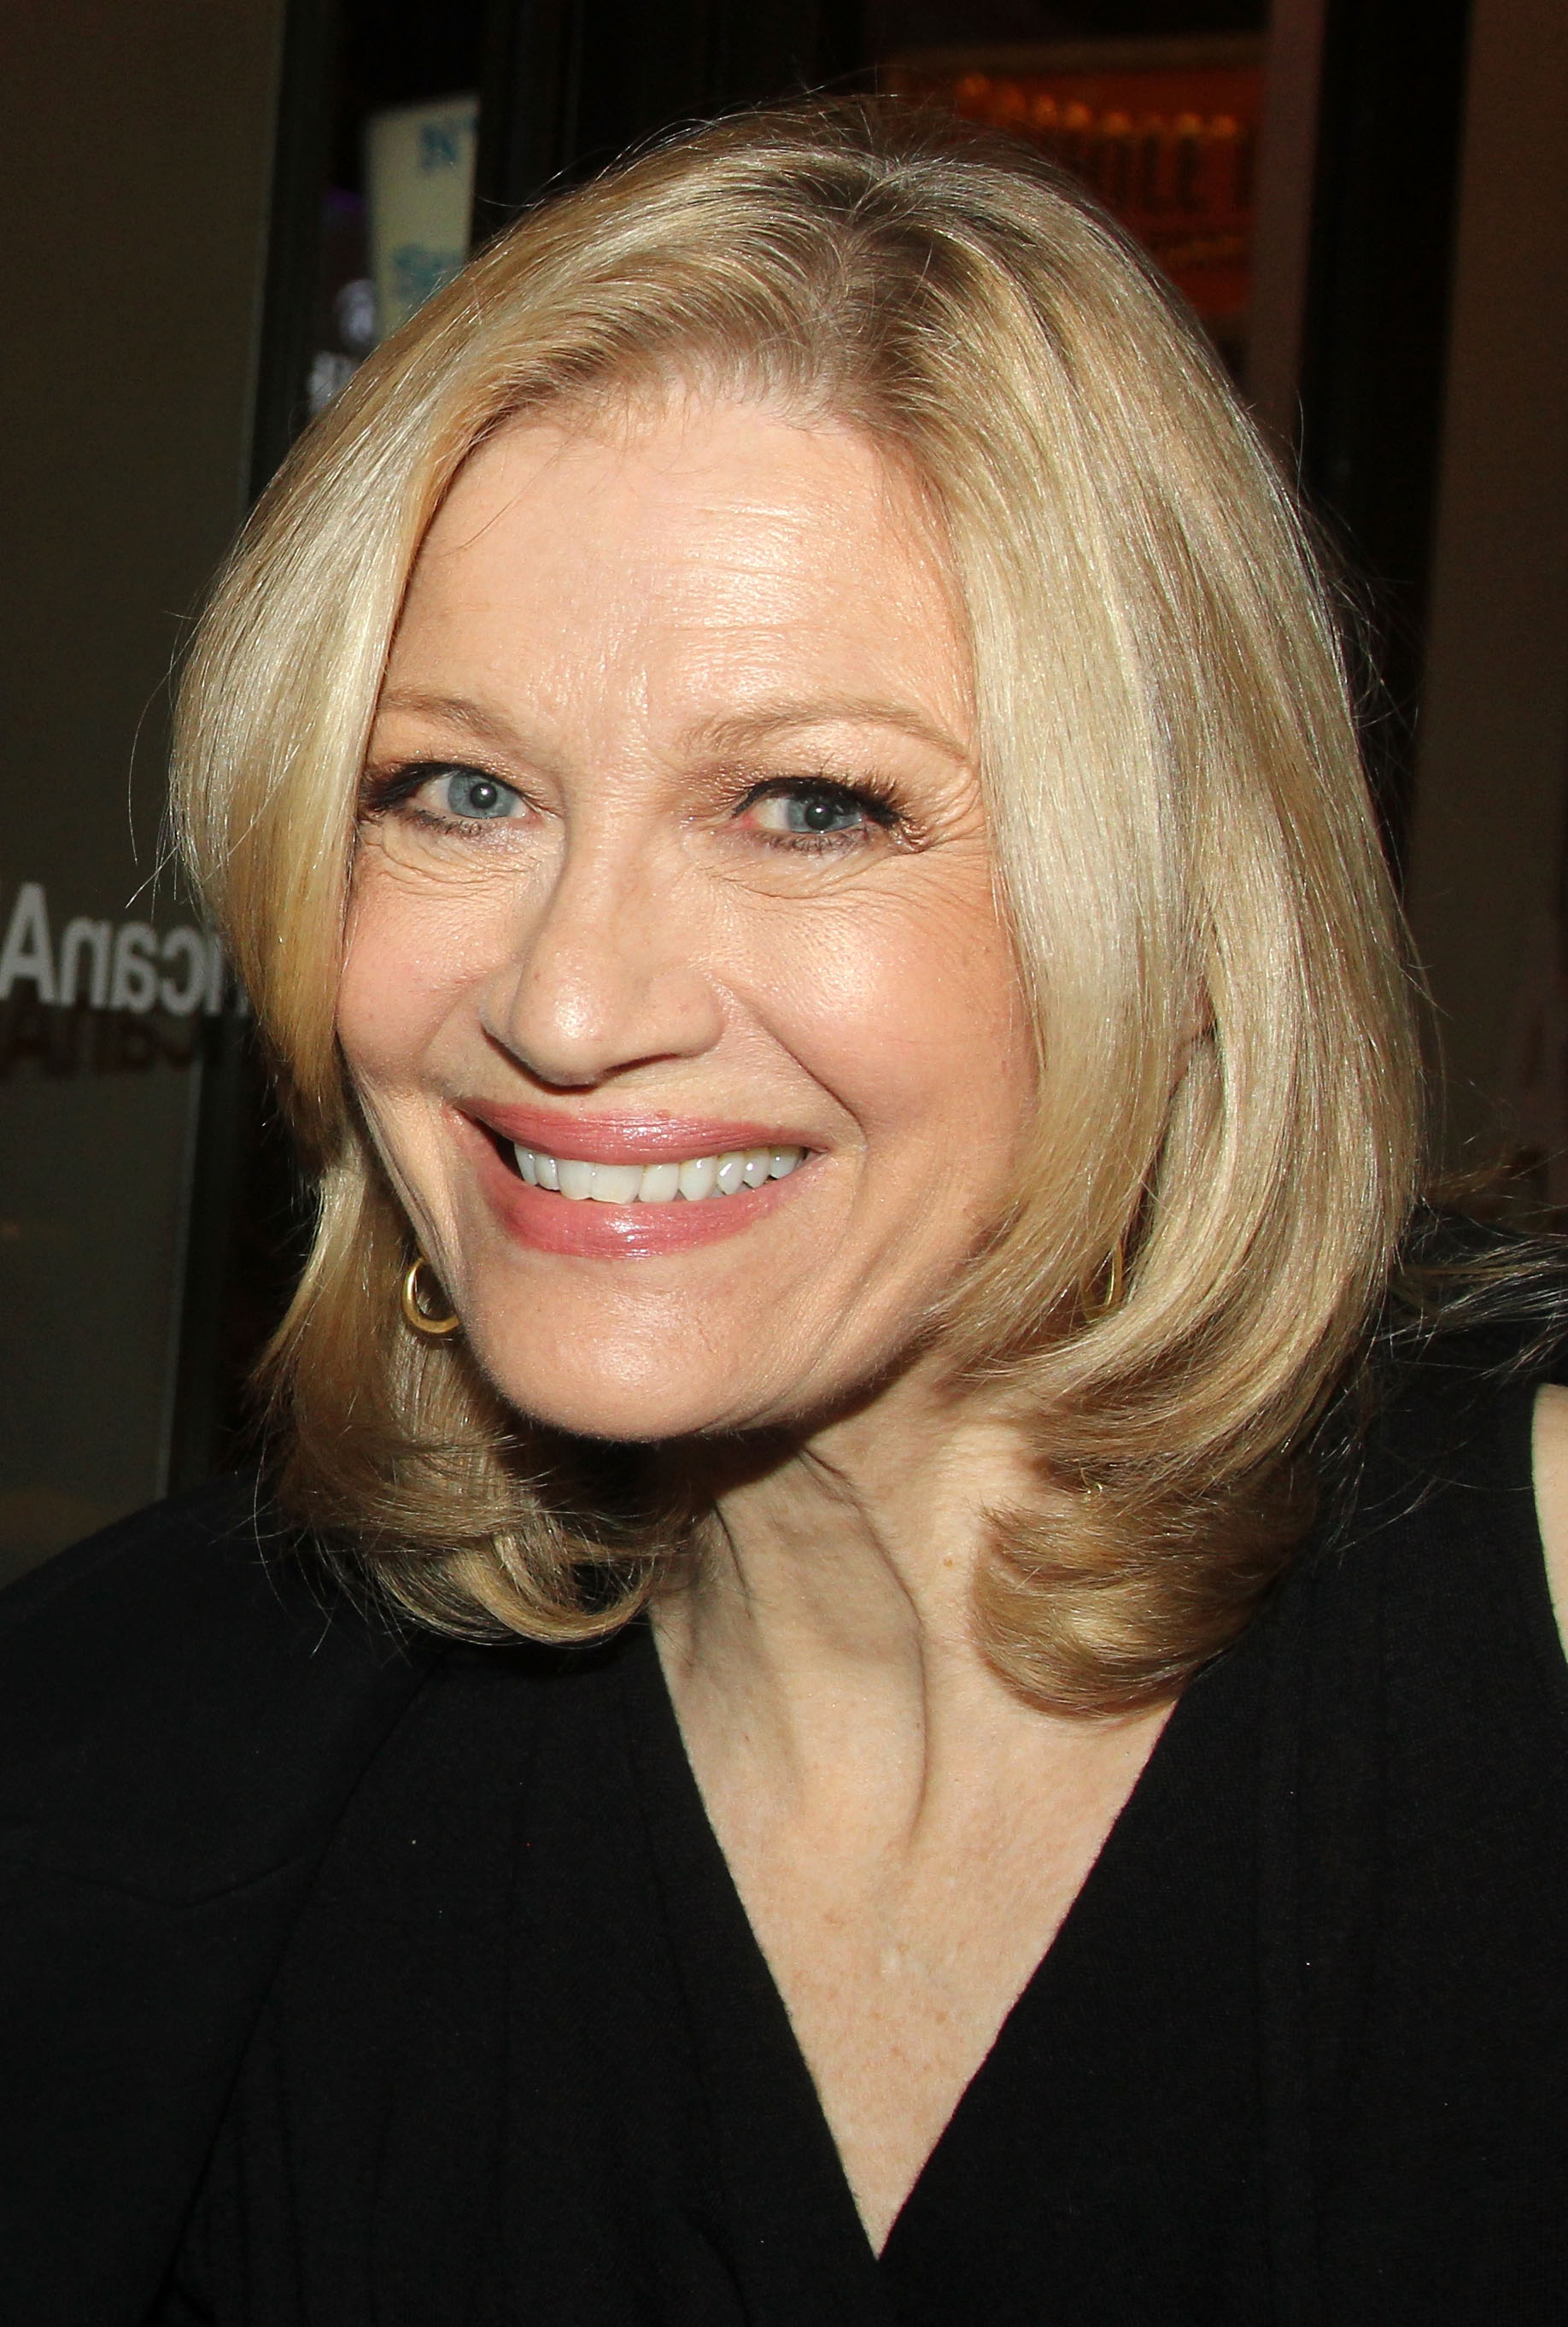 Diane Sawyer at The Opening Night of  The Real Thing  in New York City on Oct. 30, 2014.